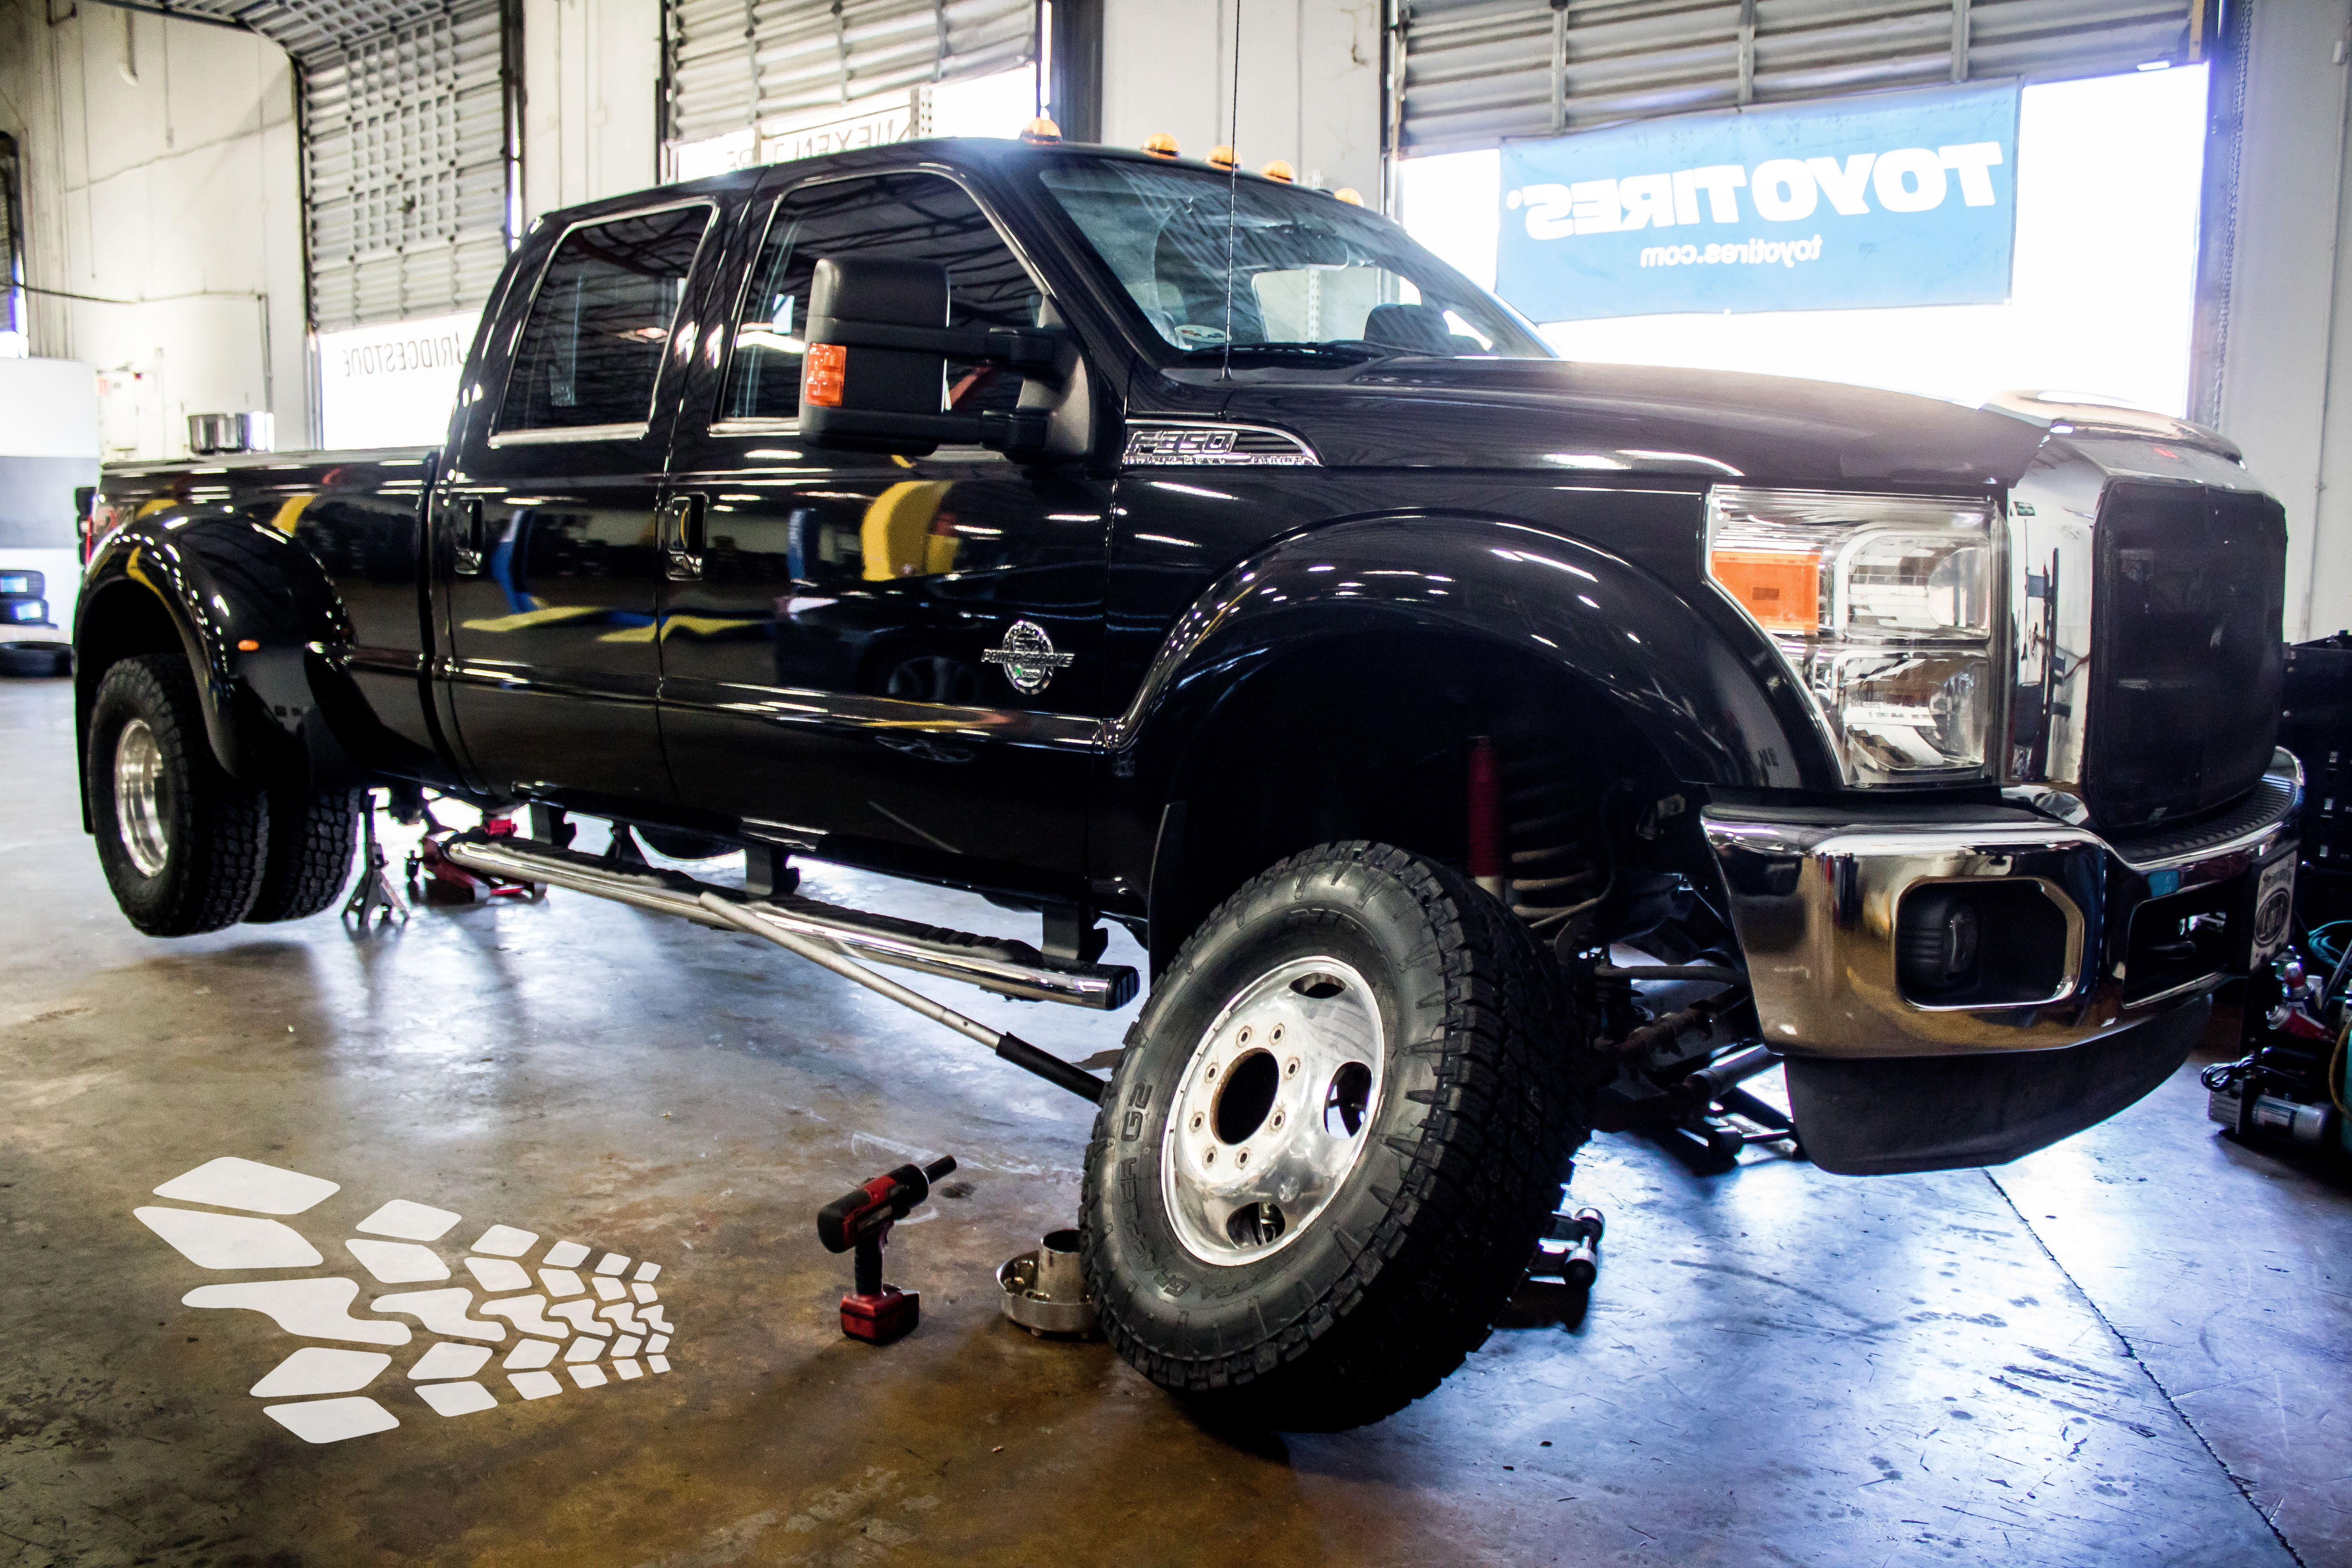 404 Not Found 2 Carshoez Com Ford Super Duty Tyre Size Grappler